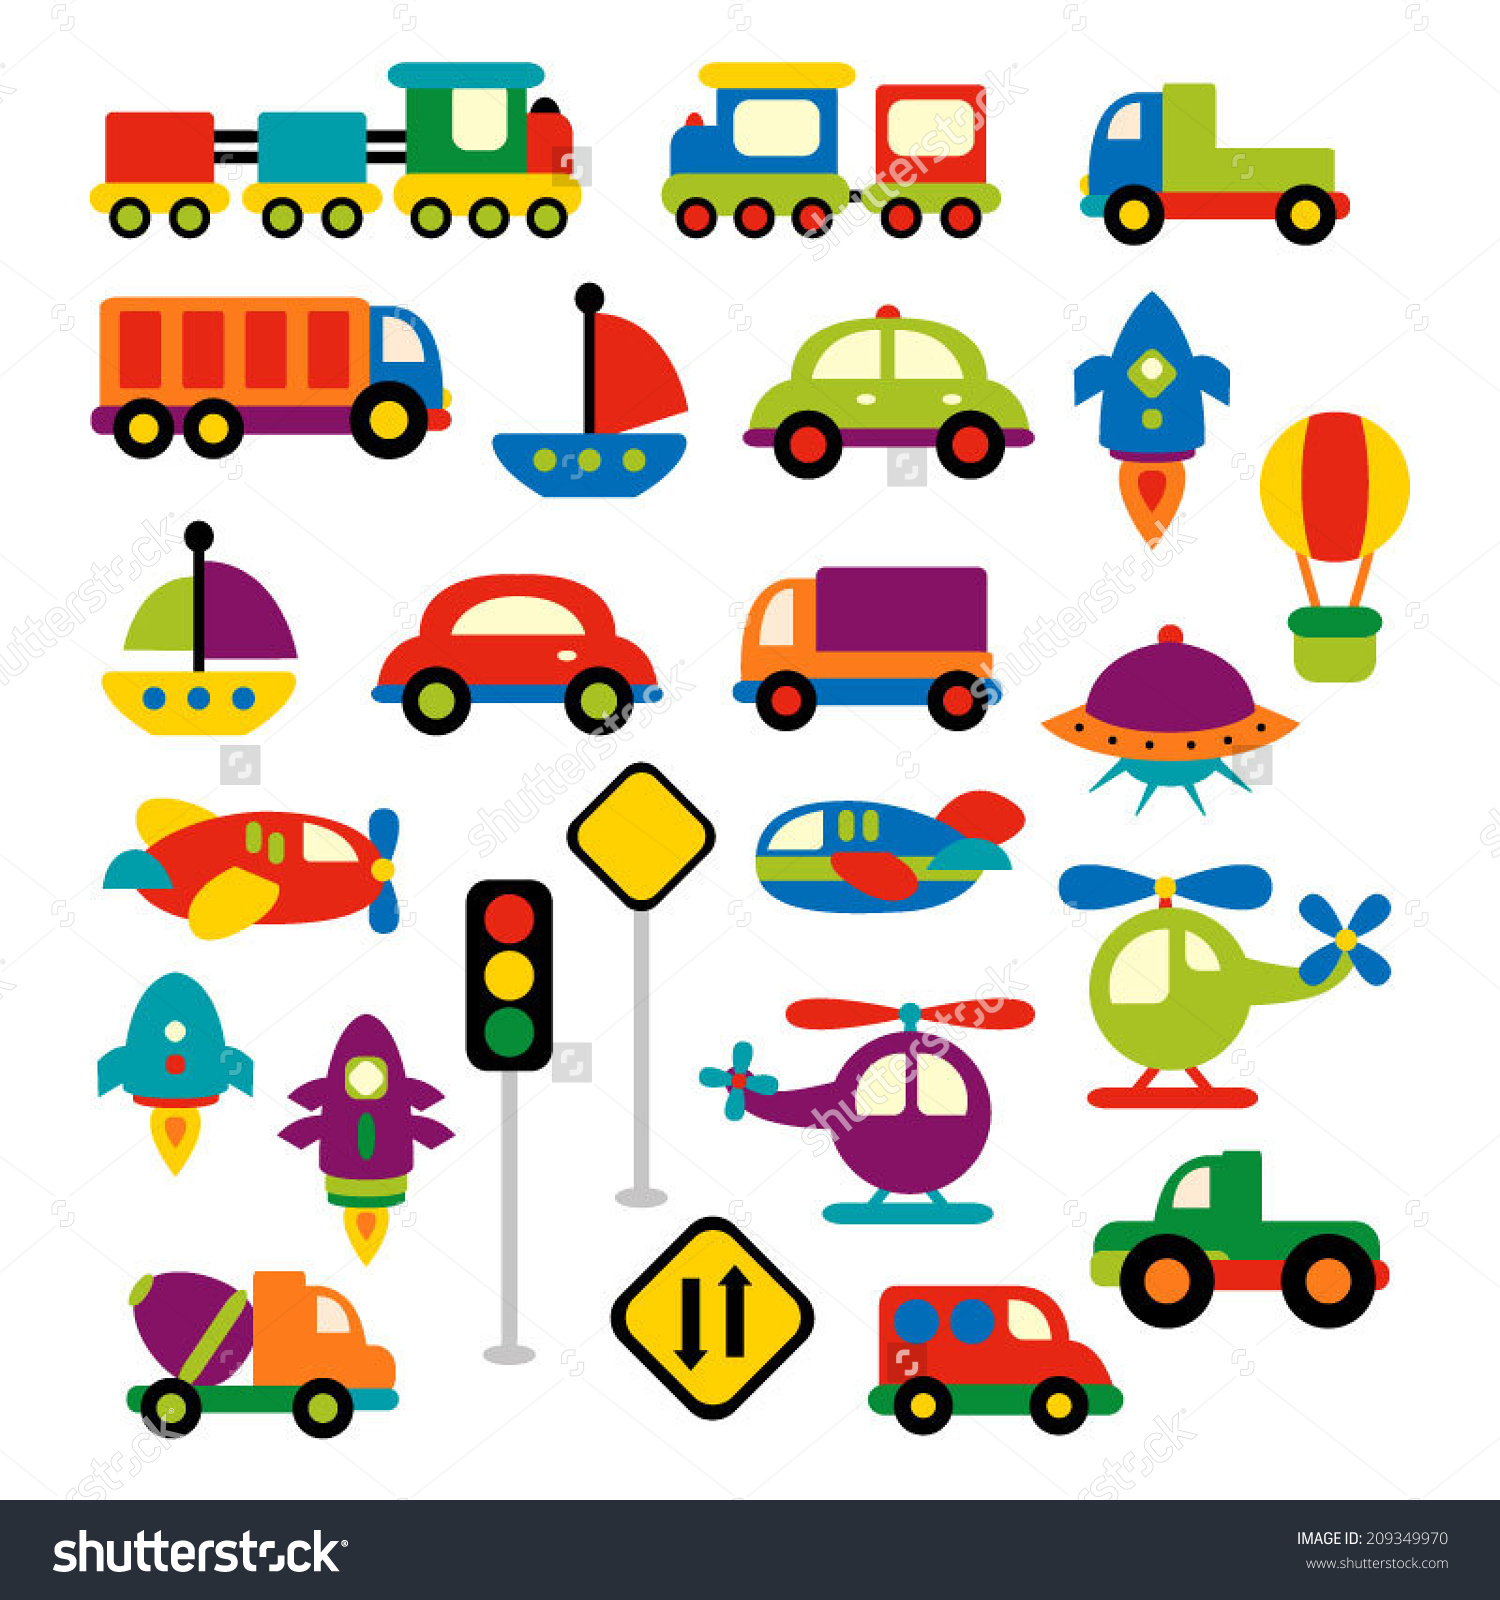 Planes trains and automobiles clipart 6 » Clipart Station.